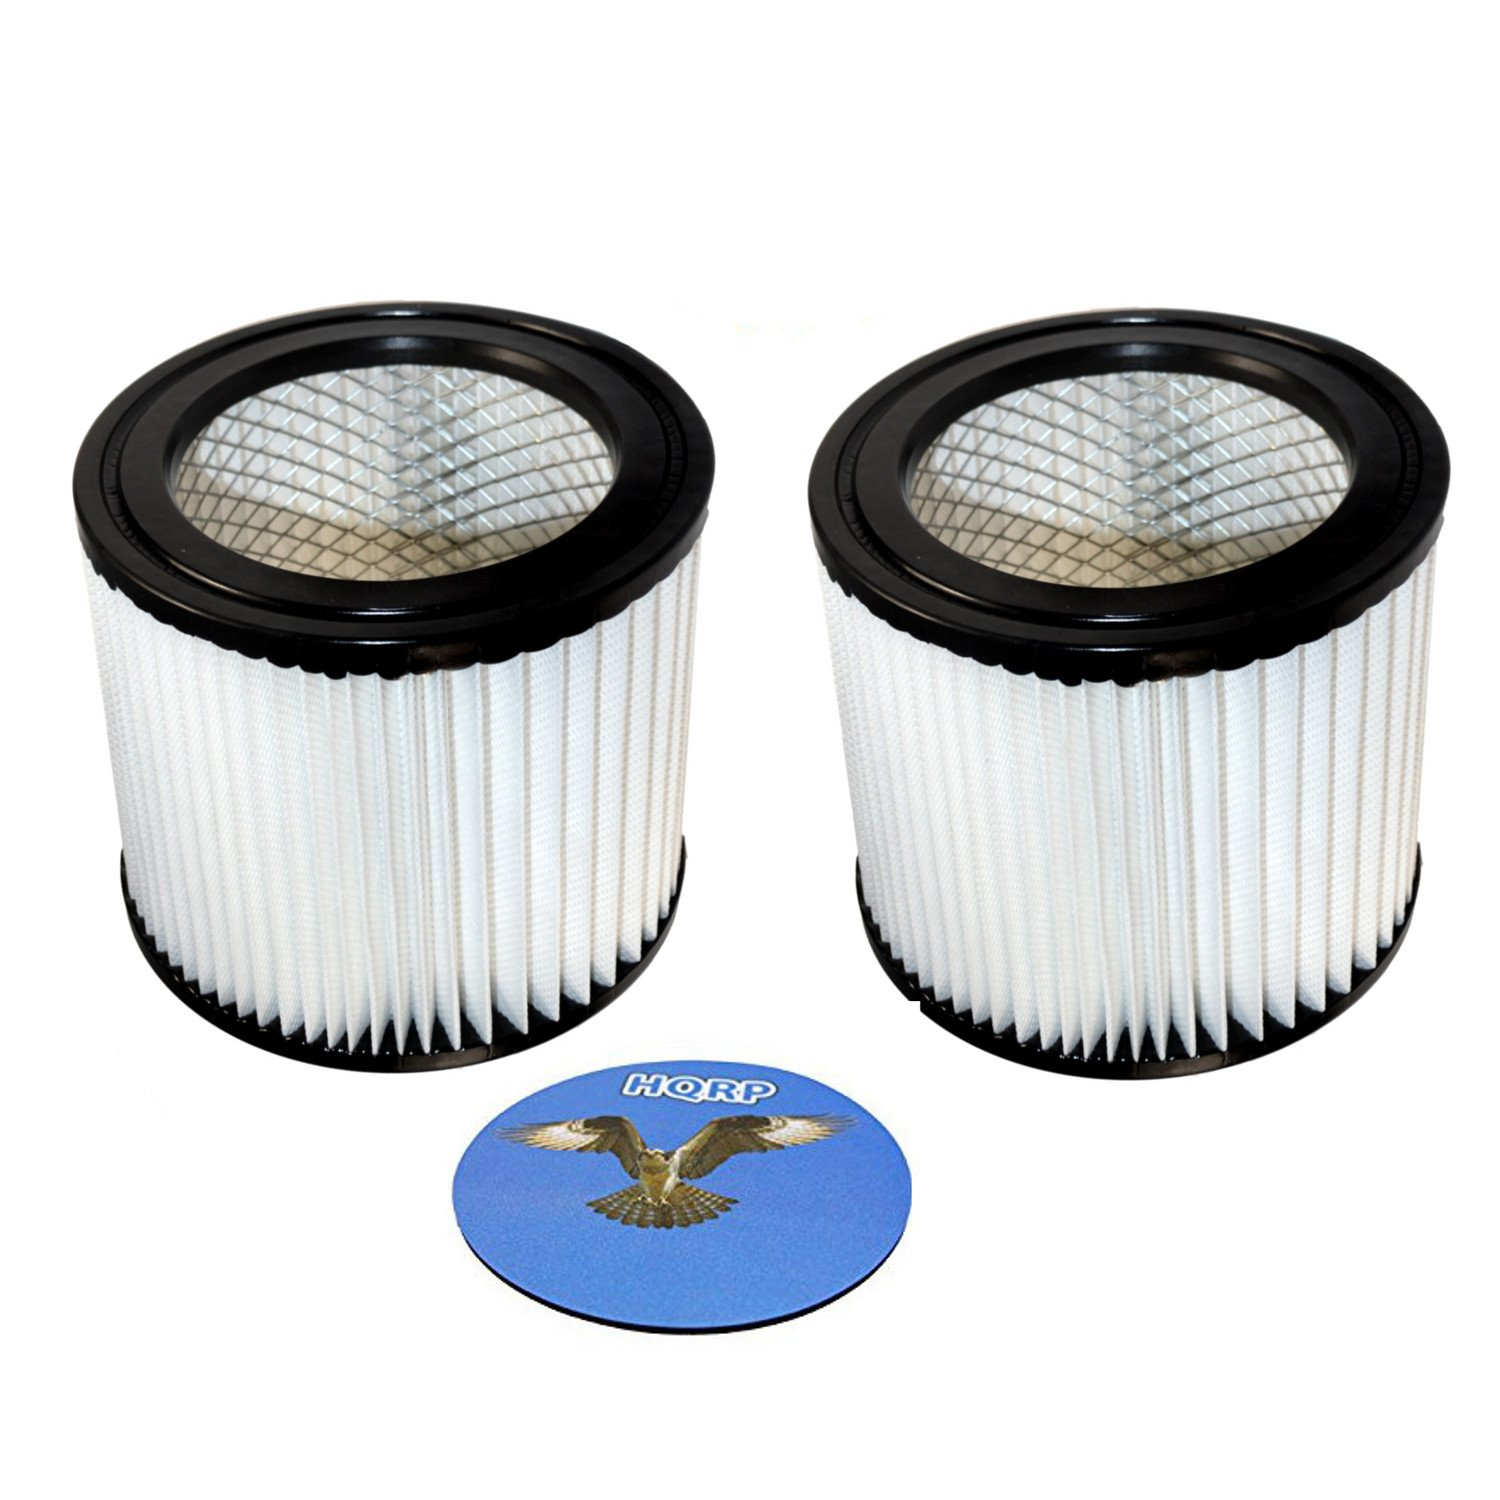 HQRP 2-pack Cartridge Filter for Shop-vac H87 H87S series H87S450 H87S550A H87S650C H87S600Cr Brute 5 Gallon Wet Dry Vacuum + HQRP Coaster - image 3 of 4